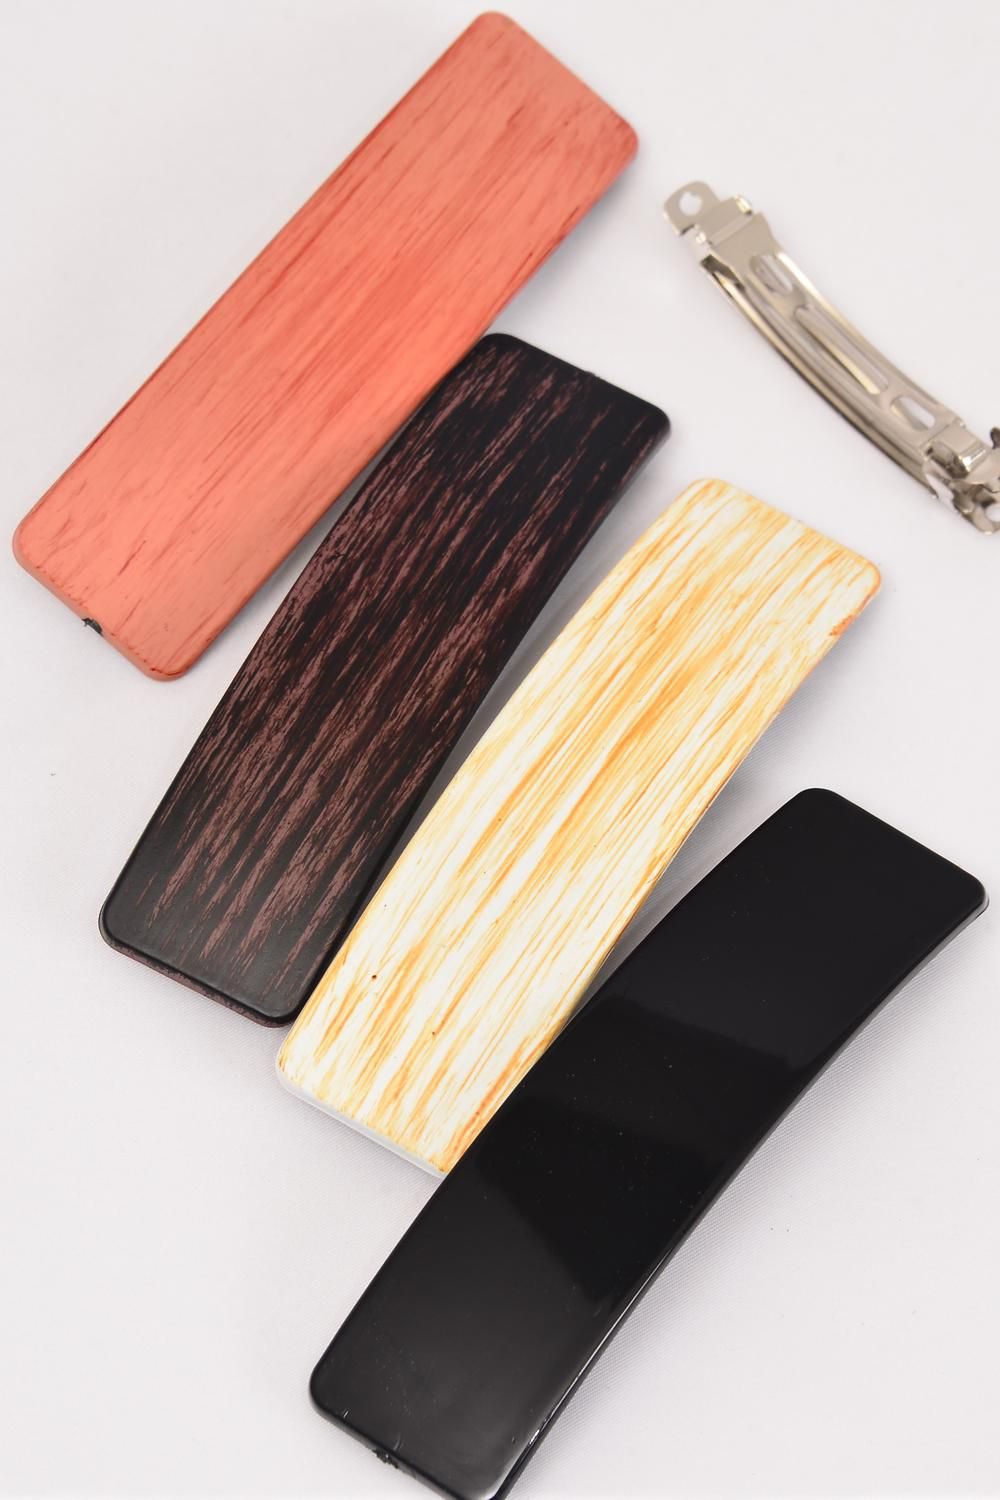 Hair Clip 11.5 cm Fall Wood Finish/DZ **French Clip** Size-11.5 cm x 3 cm Wide,3 of each Color Asst,Hang Card & Individual OPP Bag & UPC Code